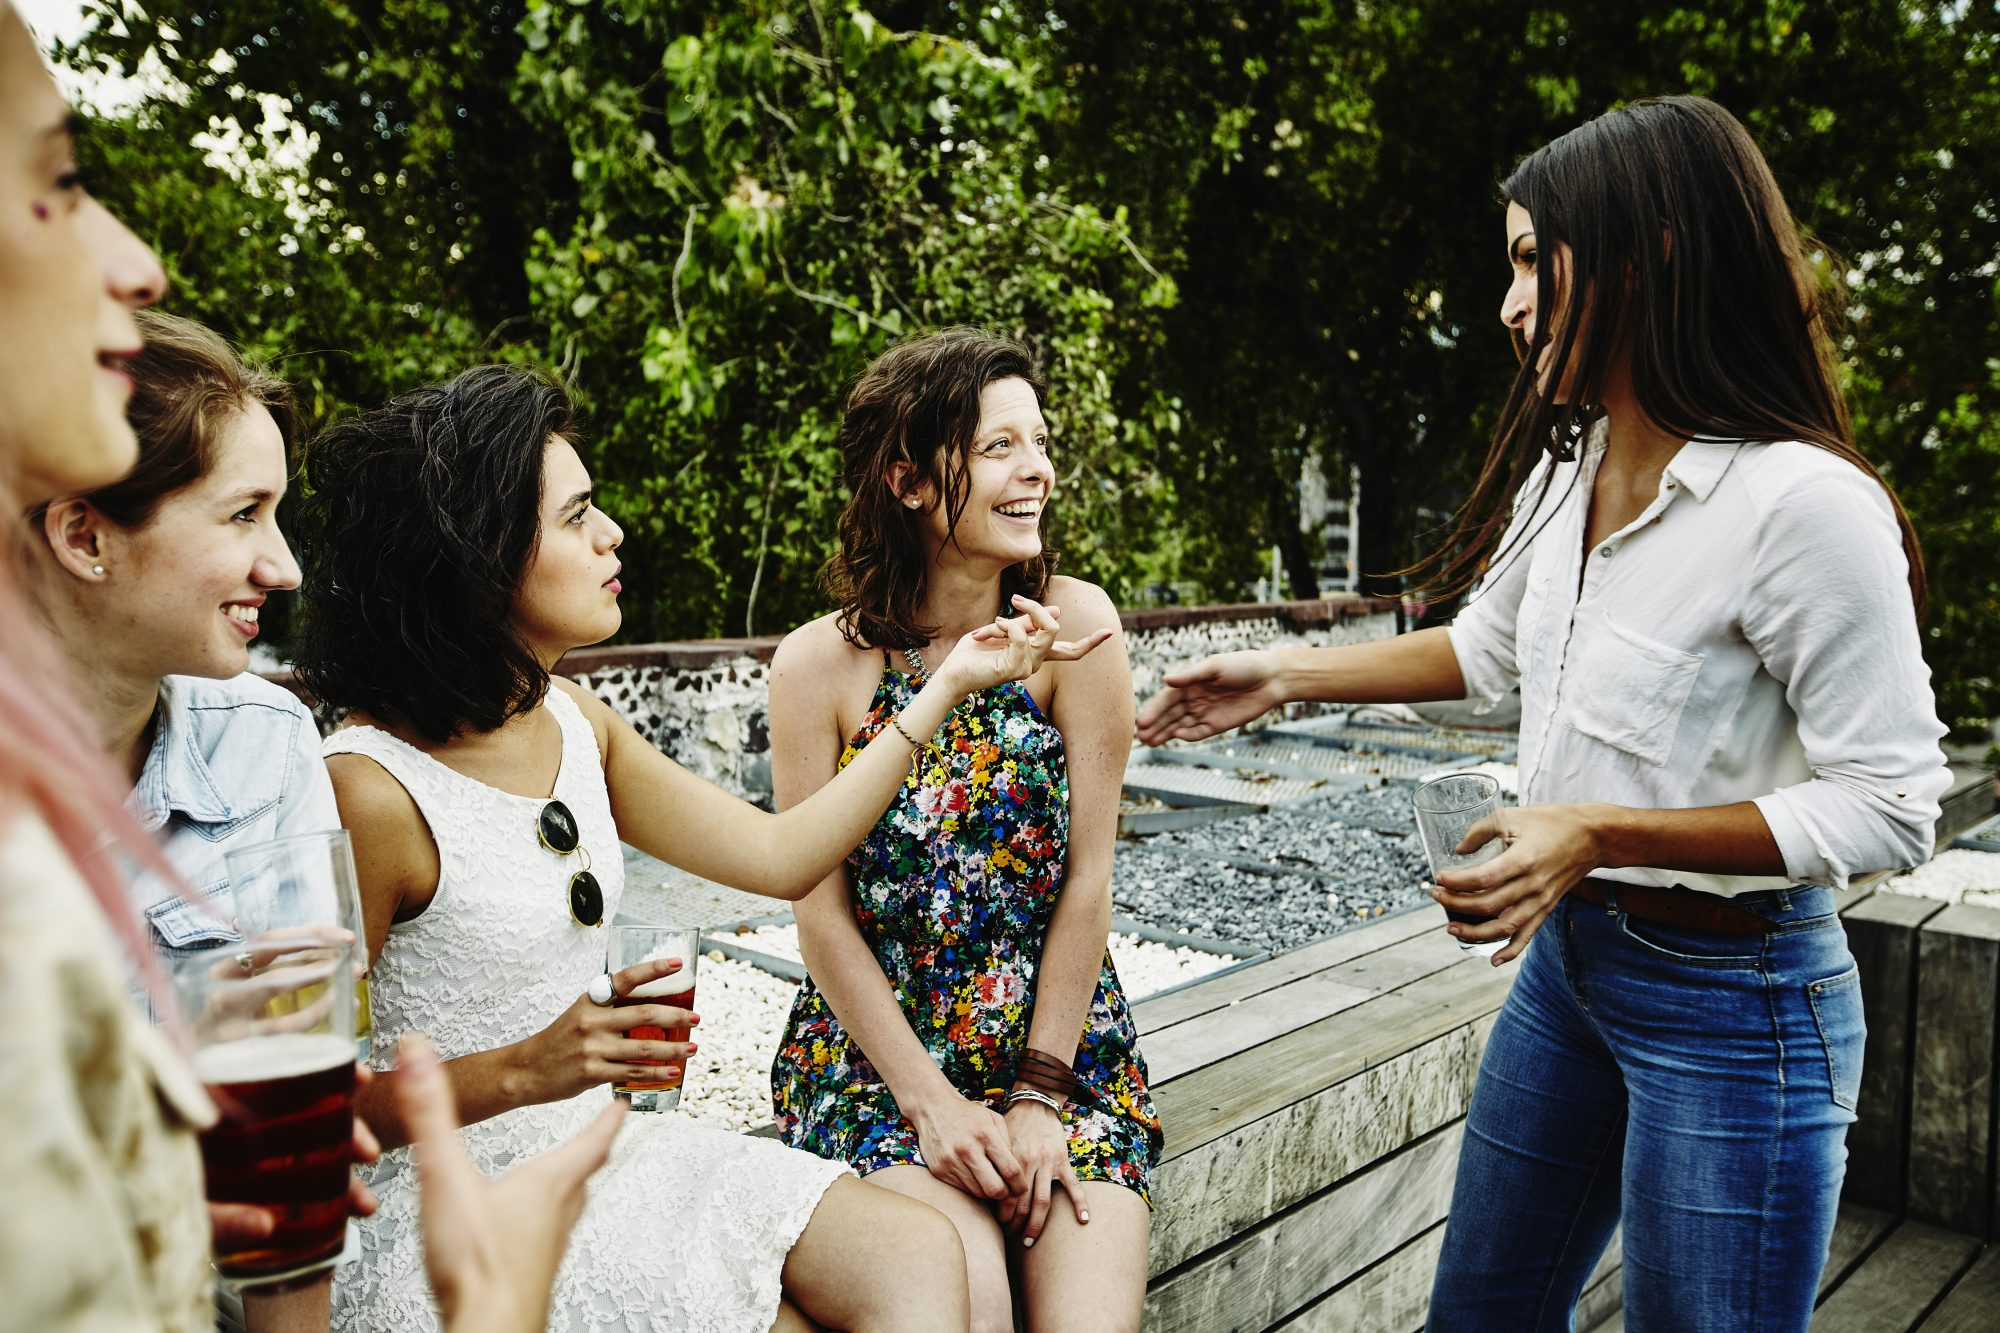 5 Reasons to Talk About Your Sex Life With Your Friends